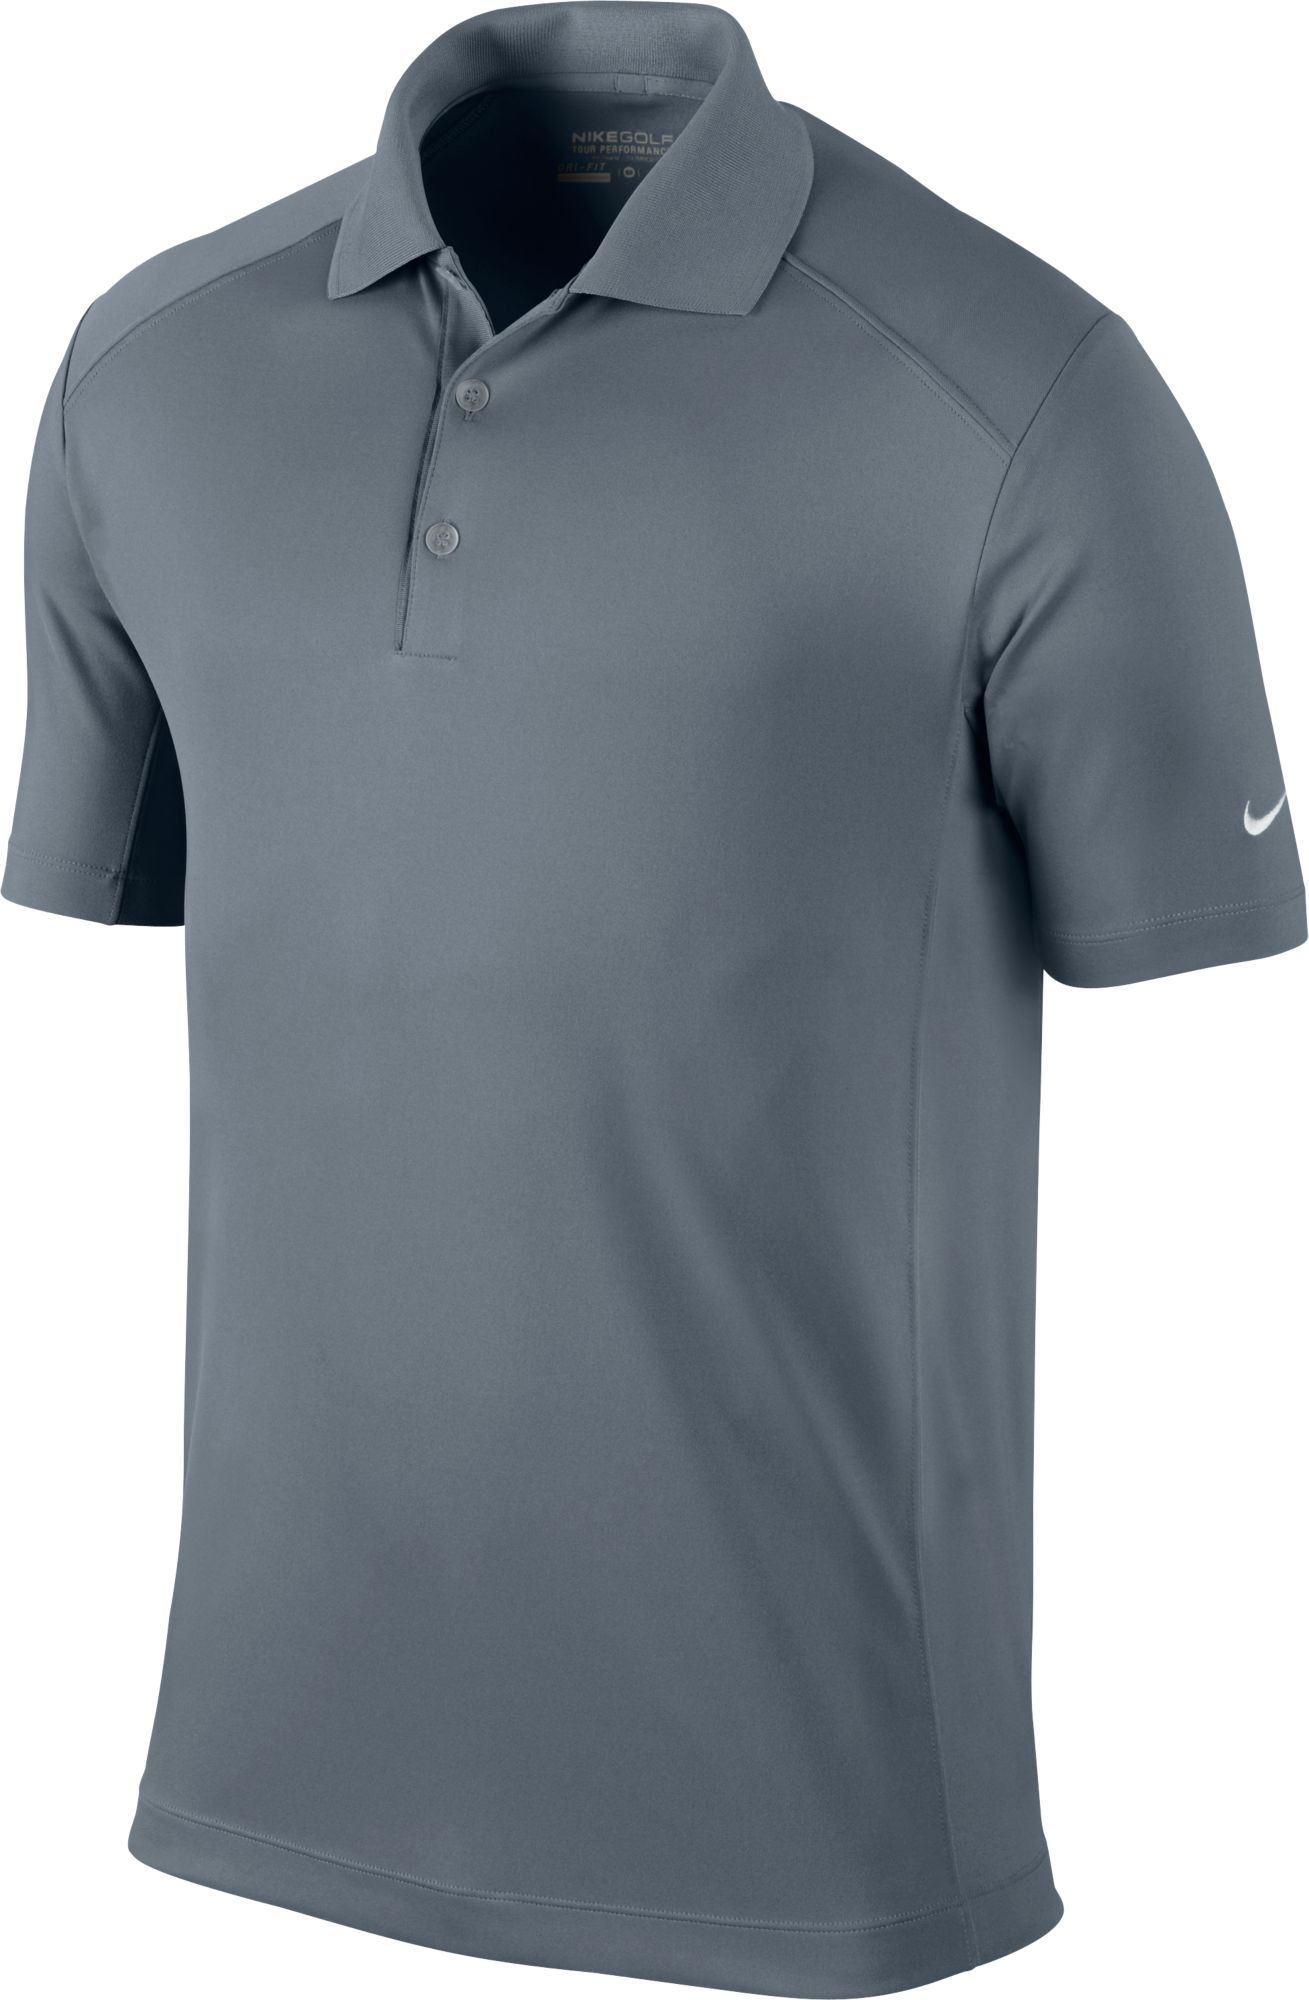 nike golf polo dri fit. Black Bedroom Furniture Sets. Home Design Ideas